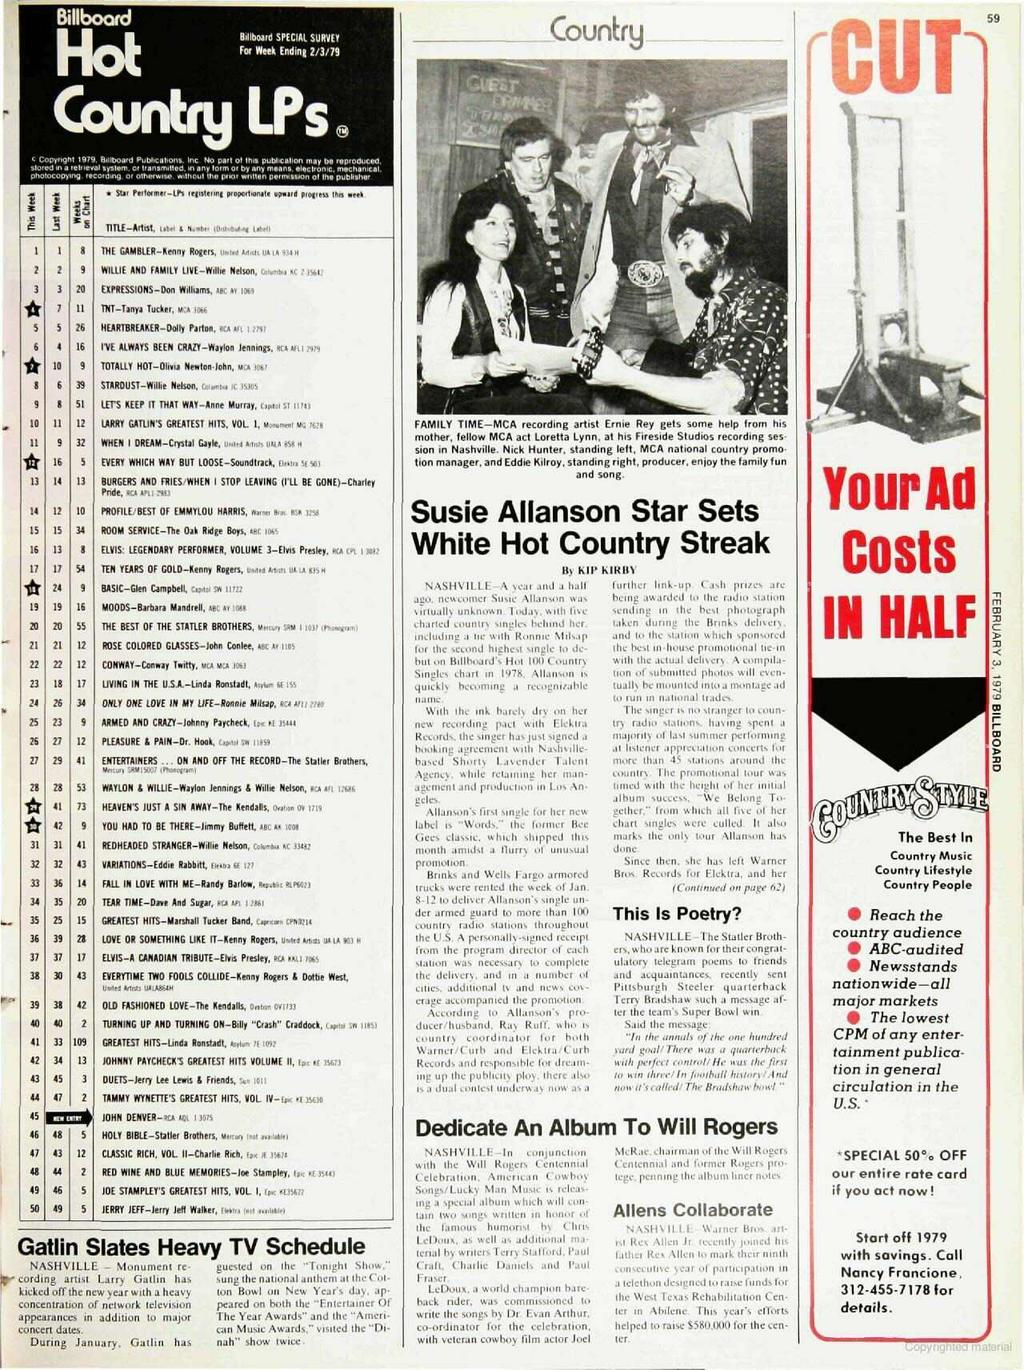 Billboard Hot Billboard SPECAL SURVEY For Week Ending 2/3/79 Country 'CUT 59 Count LPs. c copynghl 1979, Bulboard Publications, nc No part of ha pubhcahon may by. produced. Alo. in a teh,eval system.